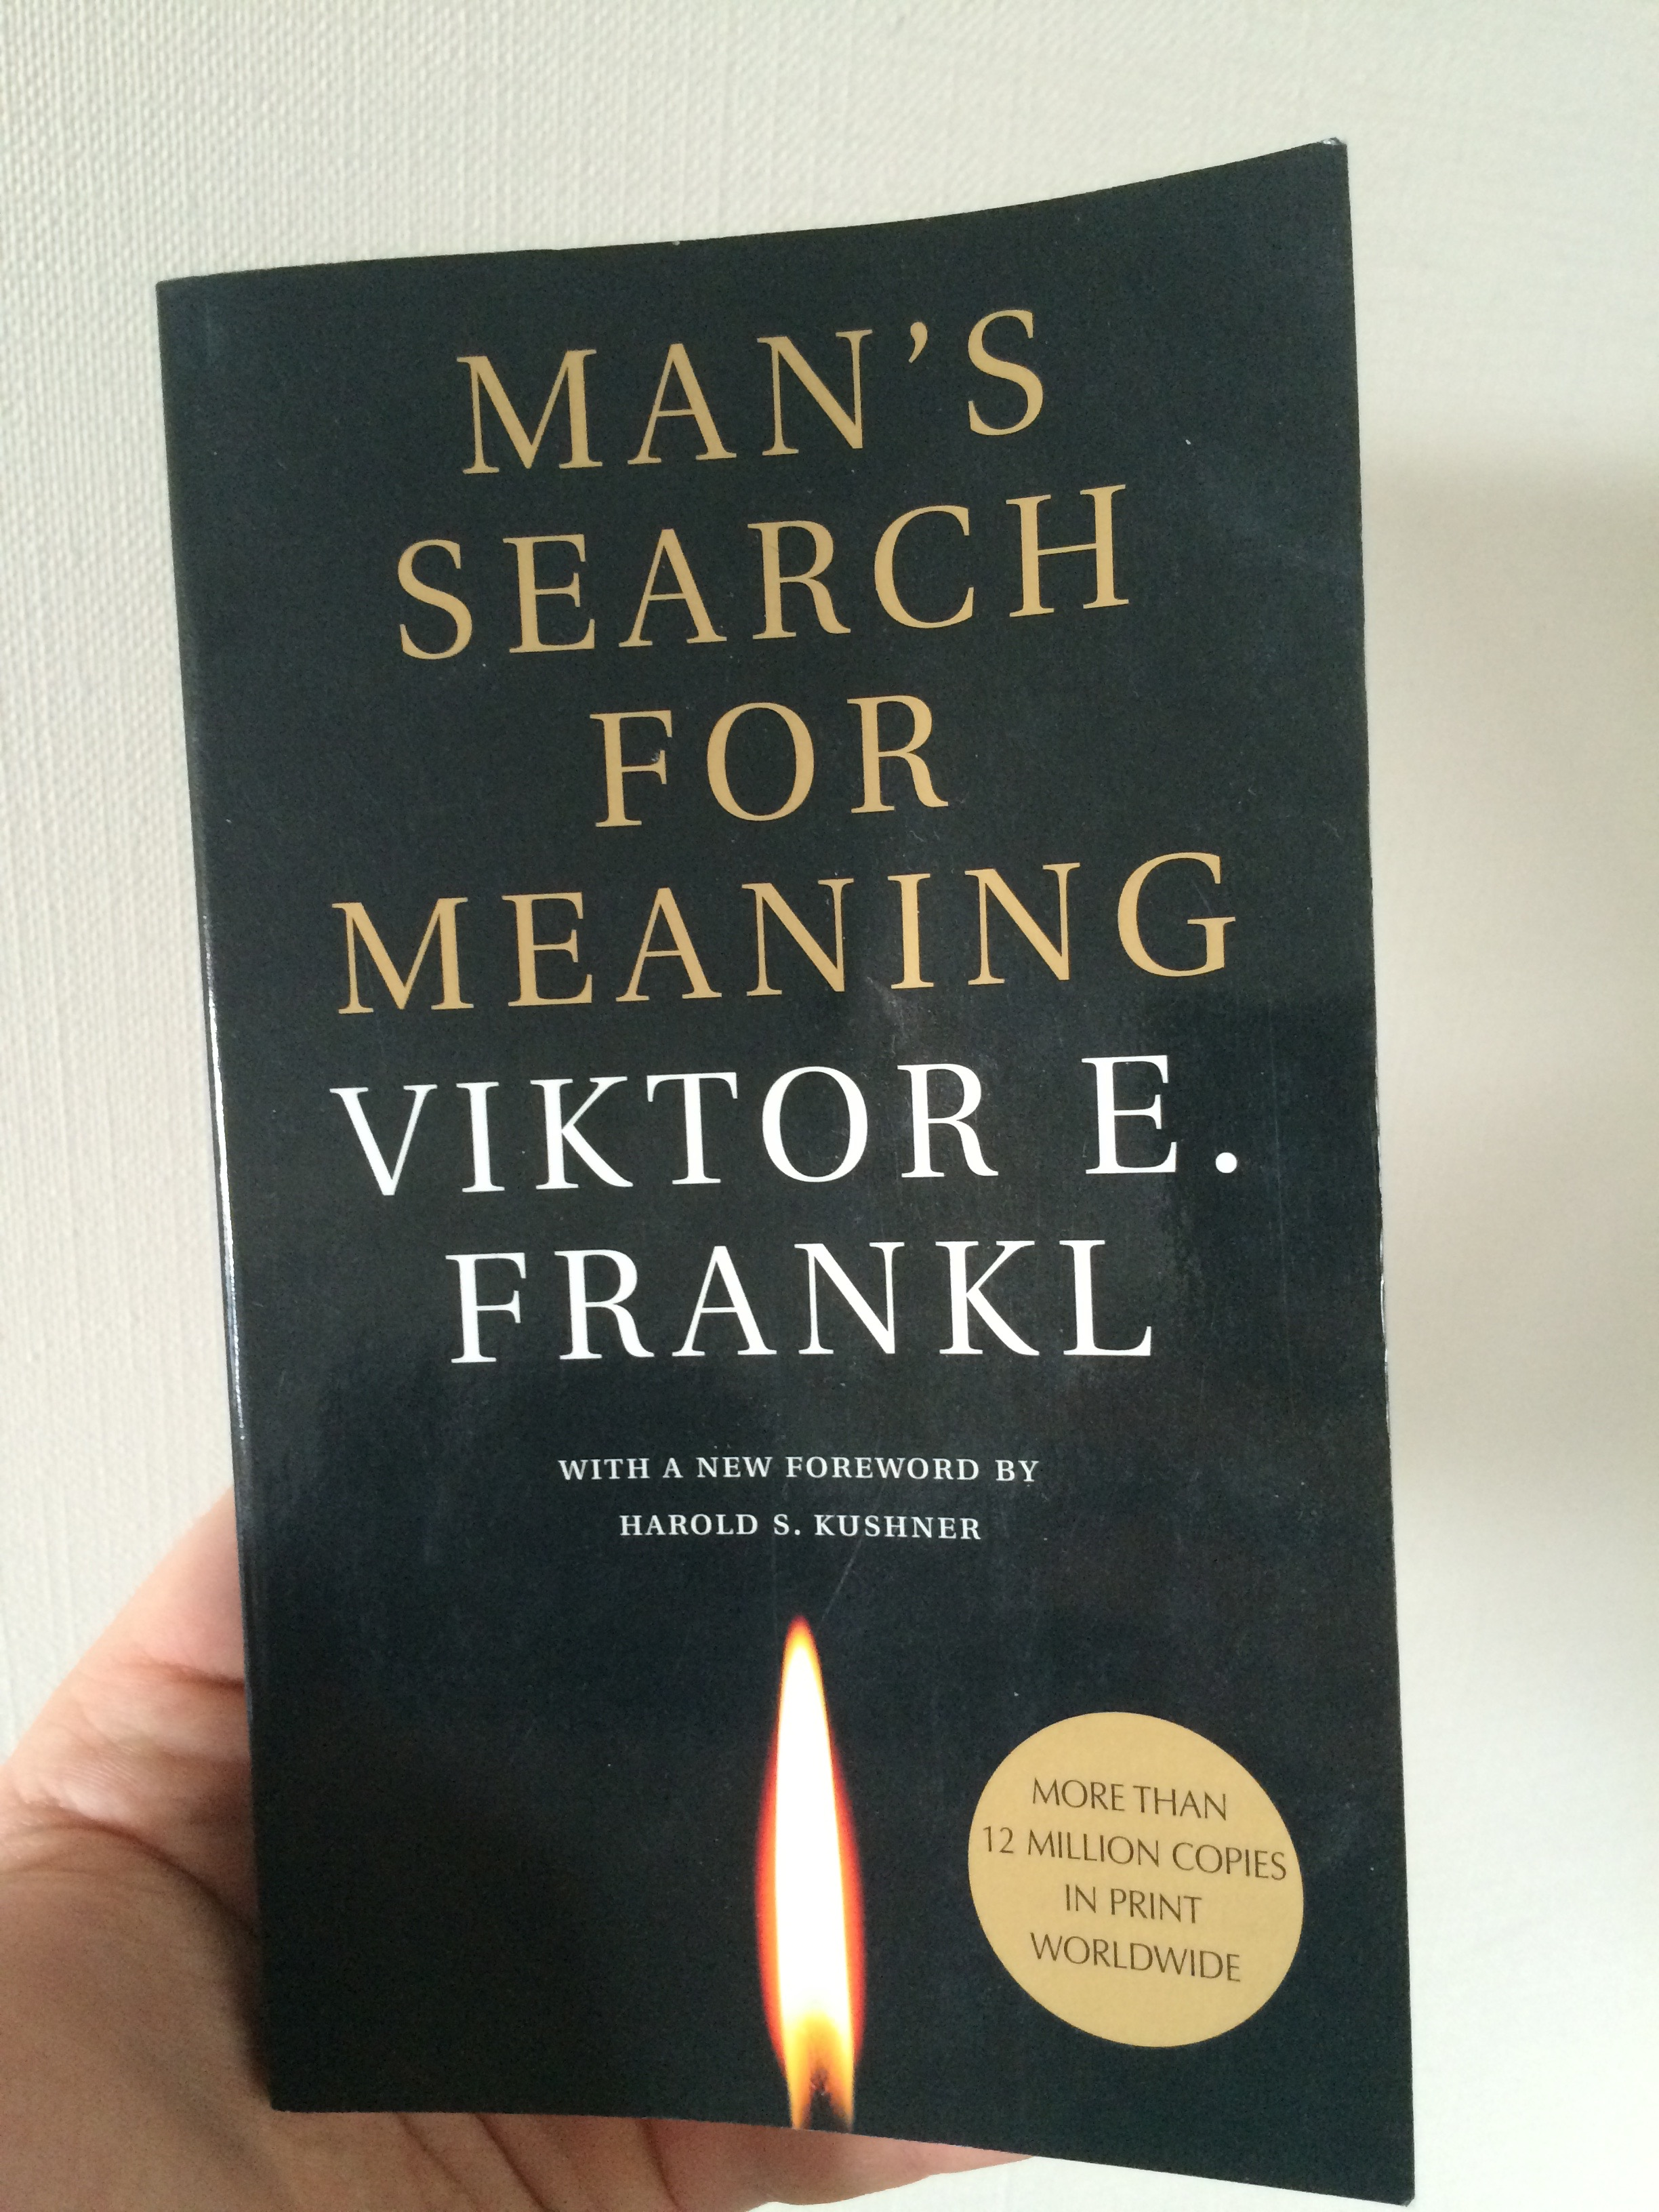 7 Lessons Learned From Man's Search for Meaning by Viktor E